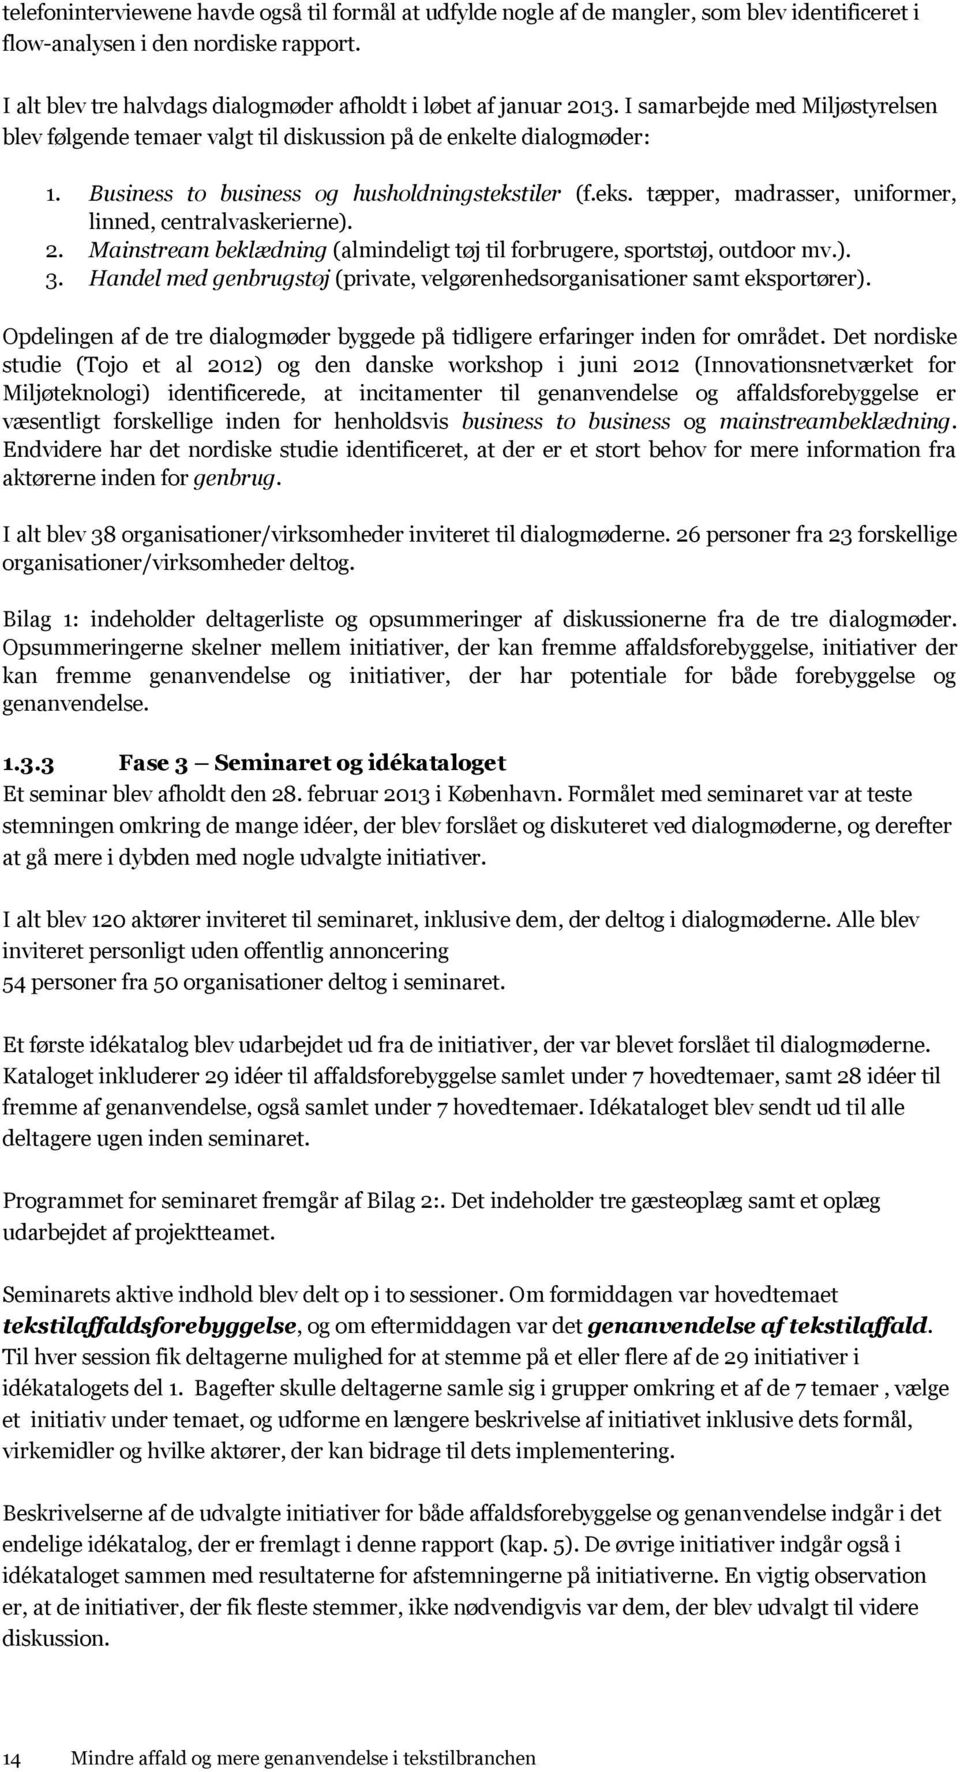 Business to business og husholdningstekstiler (f.eks. tæpper, madrasser, uniformer, linned, centralvaskerierne). 2. Mainstream beklædning (almindeligt tøj til forbrugere, sportstøj, outdoor mv.). 3.